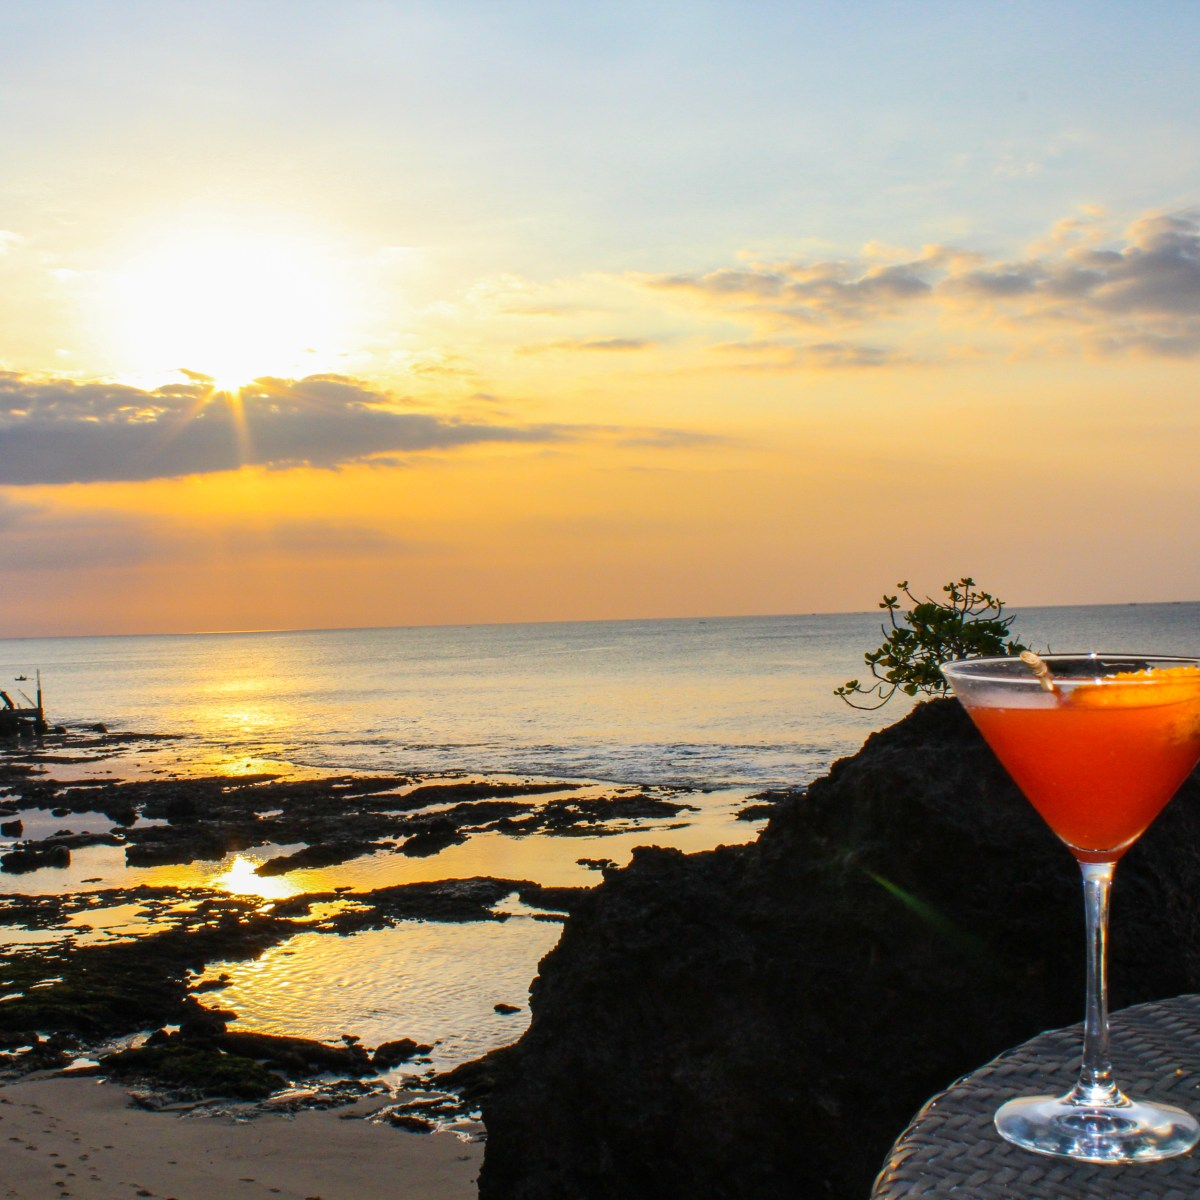 Bali's best bars, drink at sunset overlooking the ocean